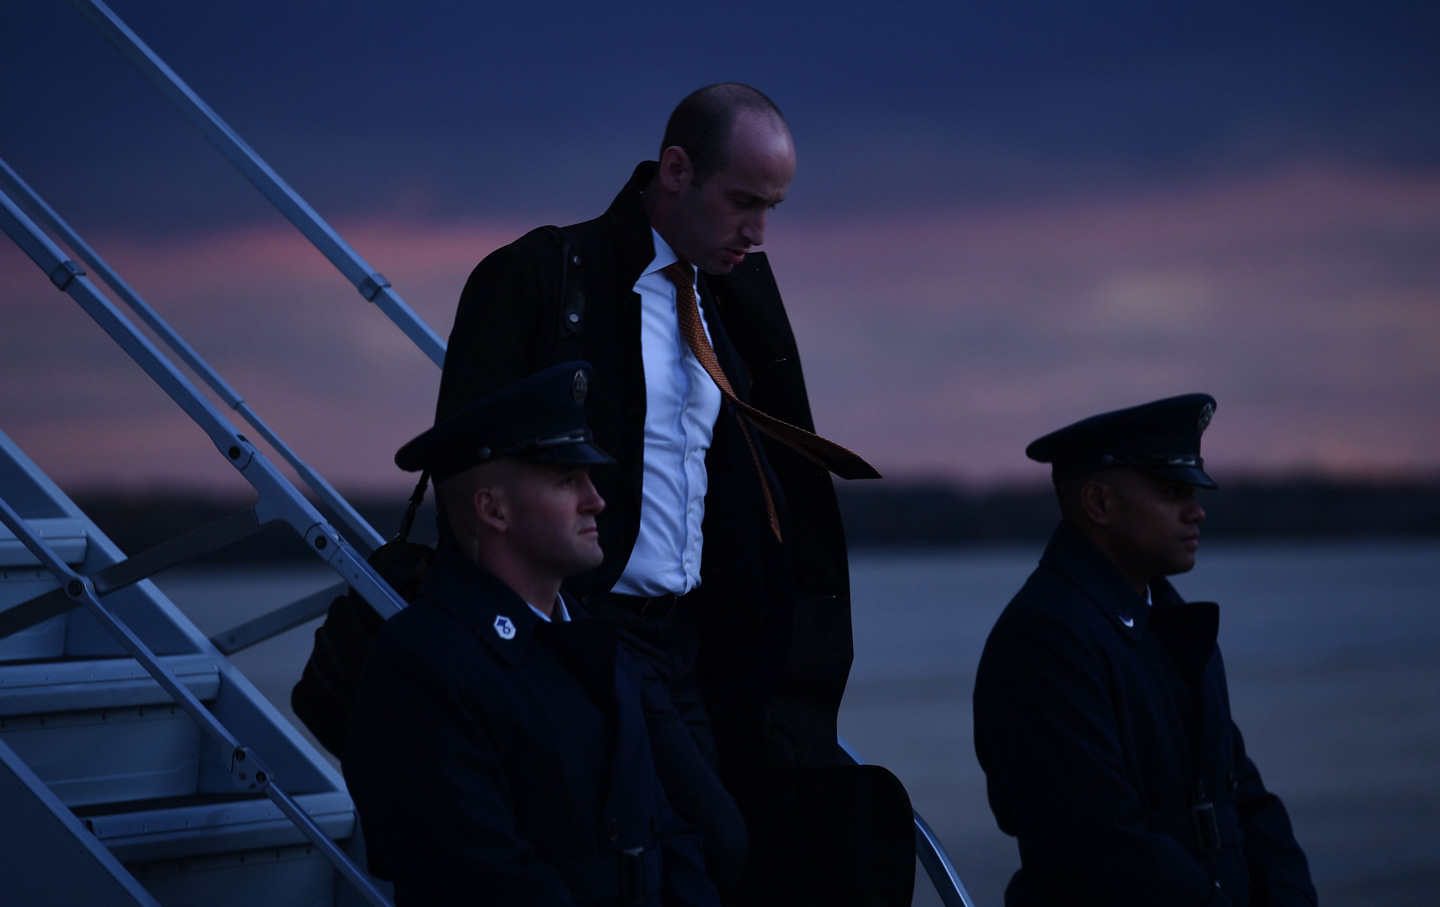 stephen-miller-air-force-one-gty-img